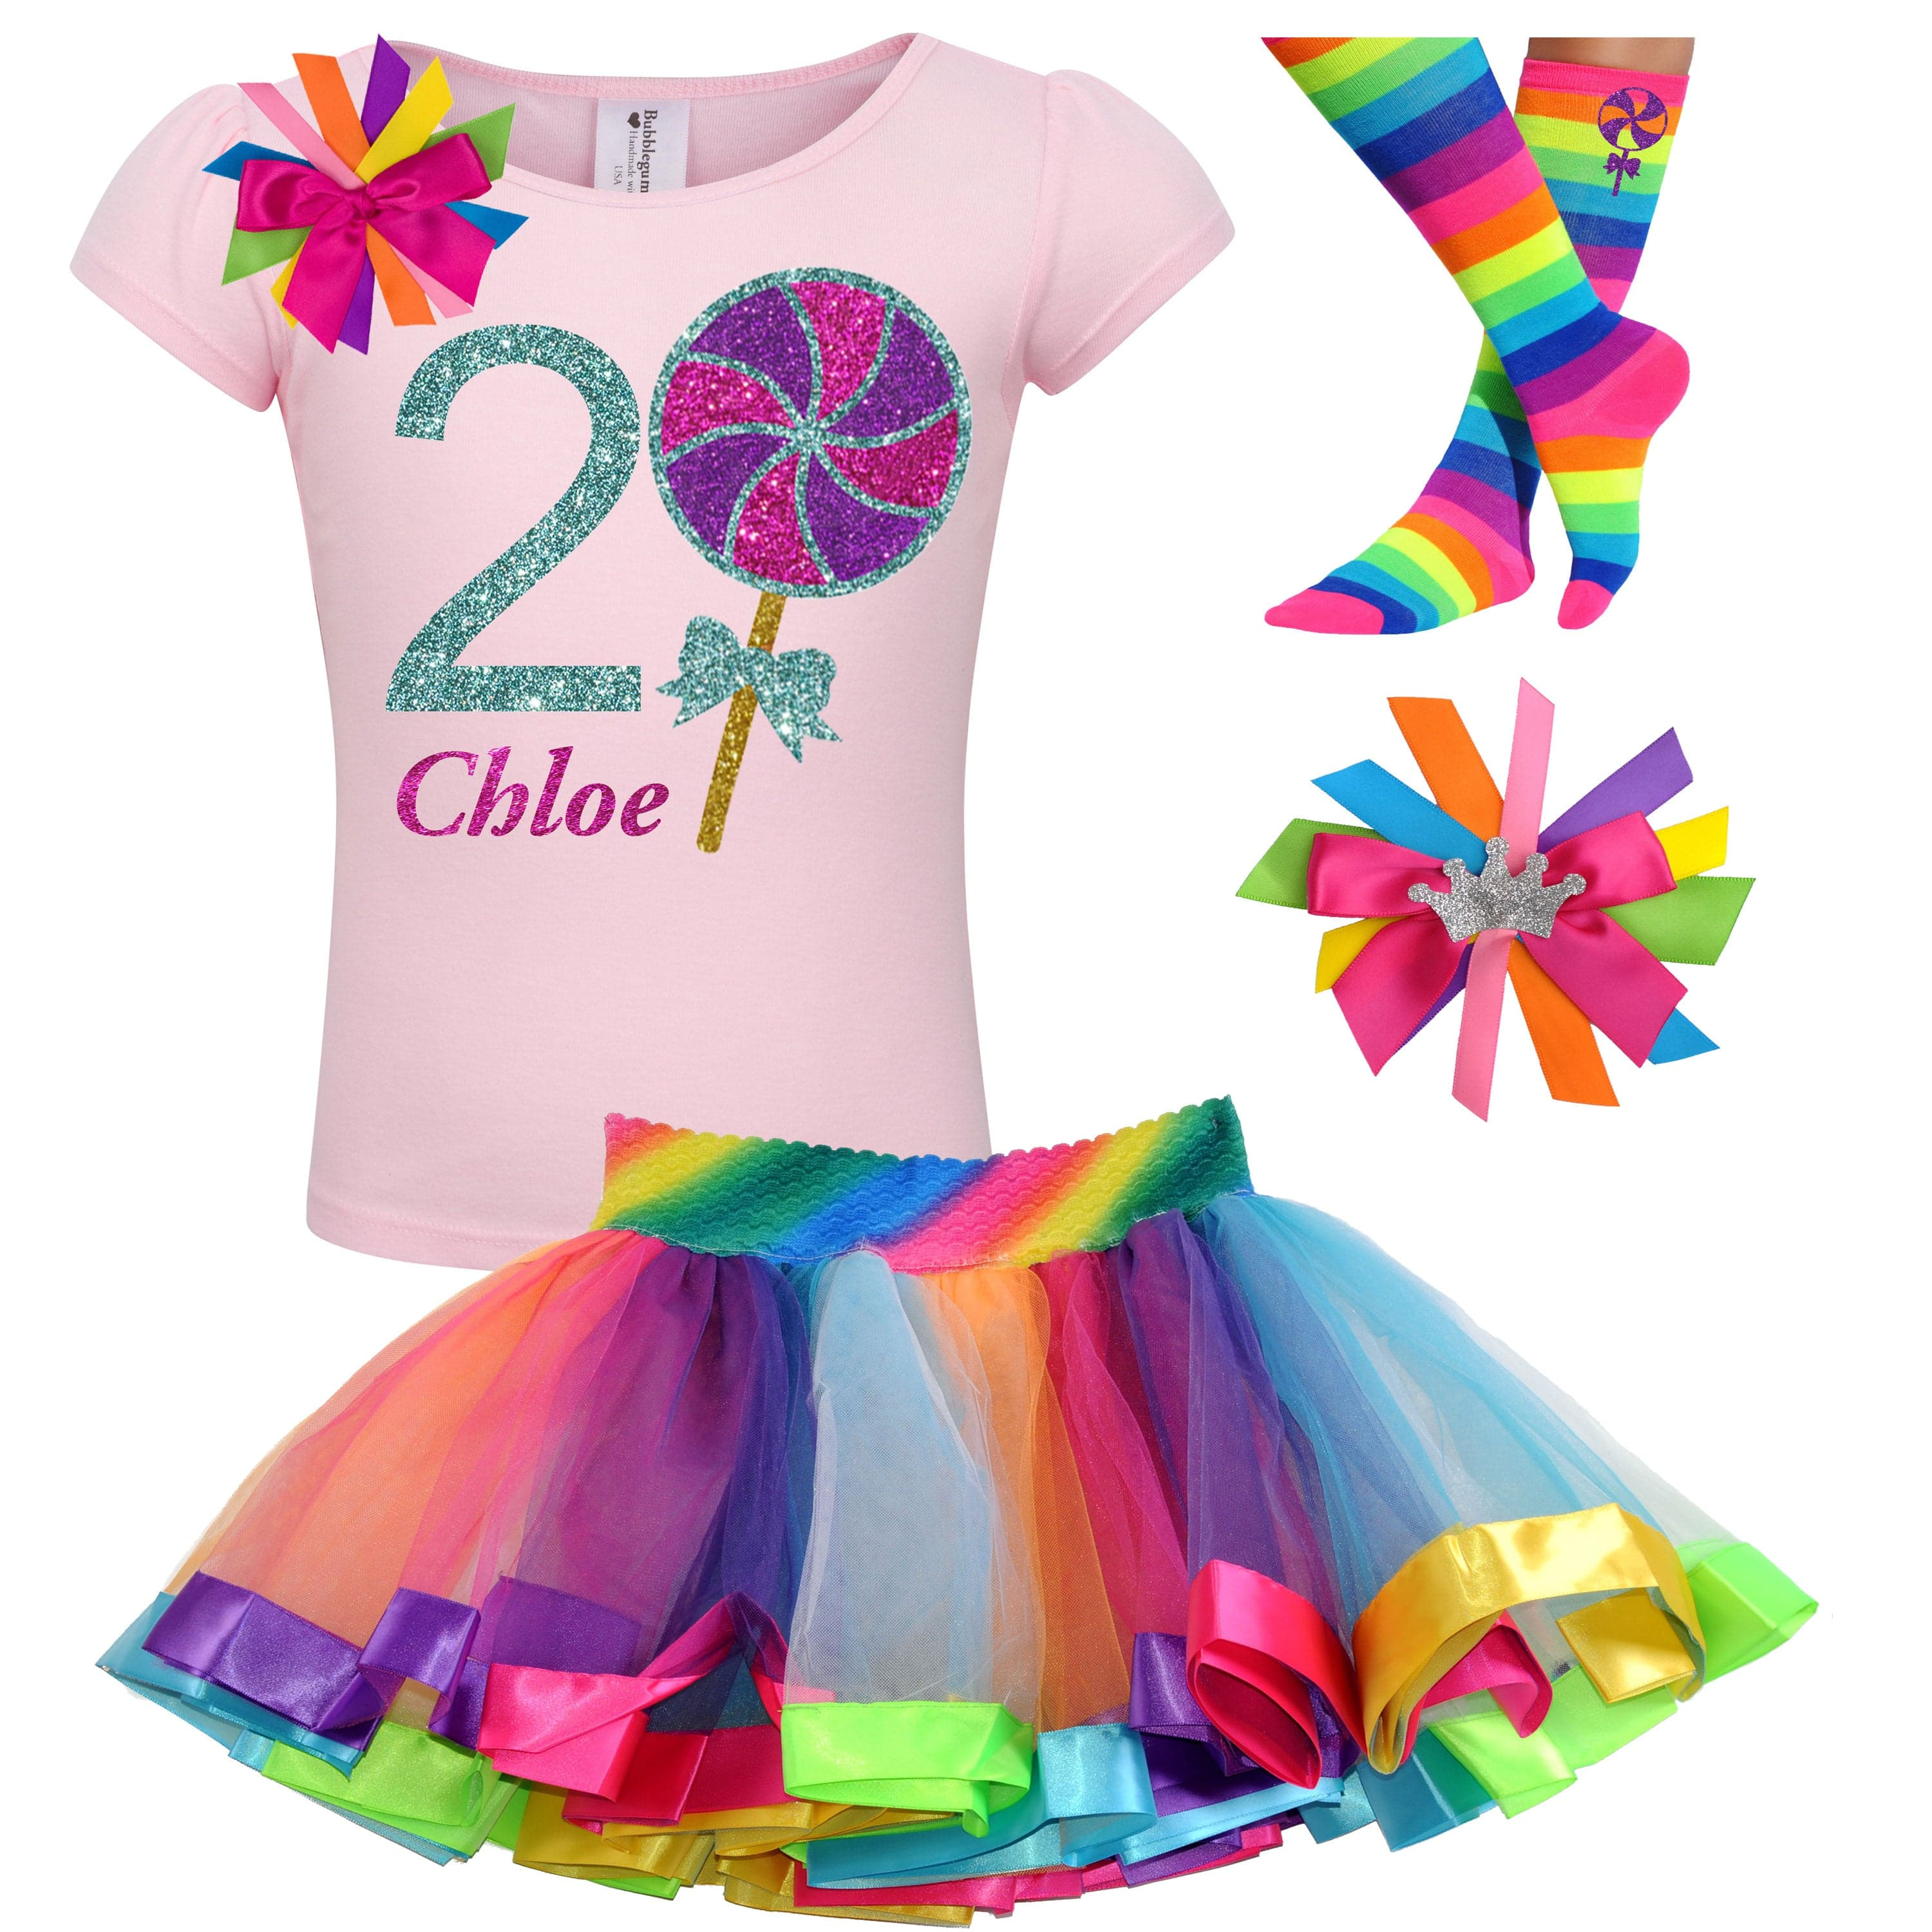 Lollipop Shirt 2nd Birthday Girls Rainbow Tutu Party Outfit 4PC Set - Outfit - Bubblegum Divas Store